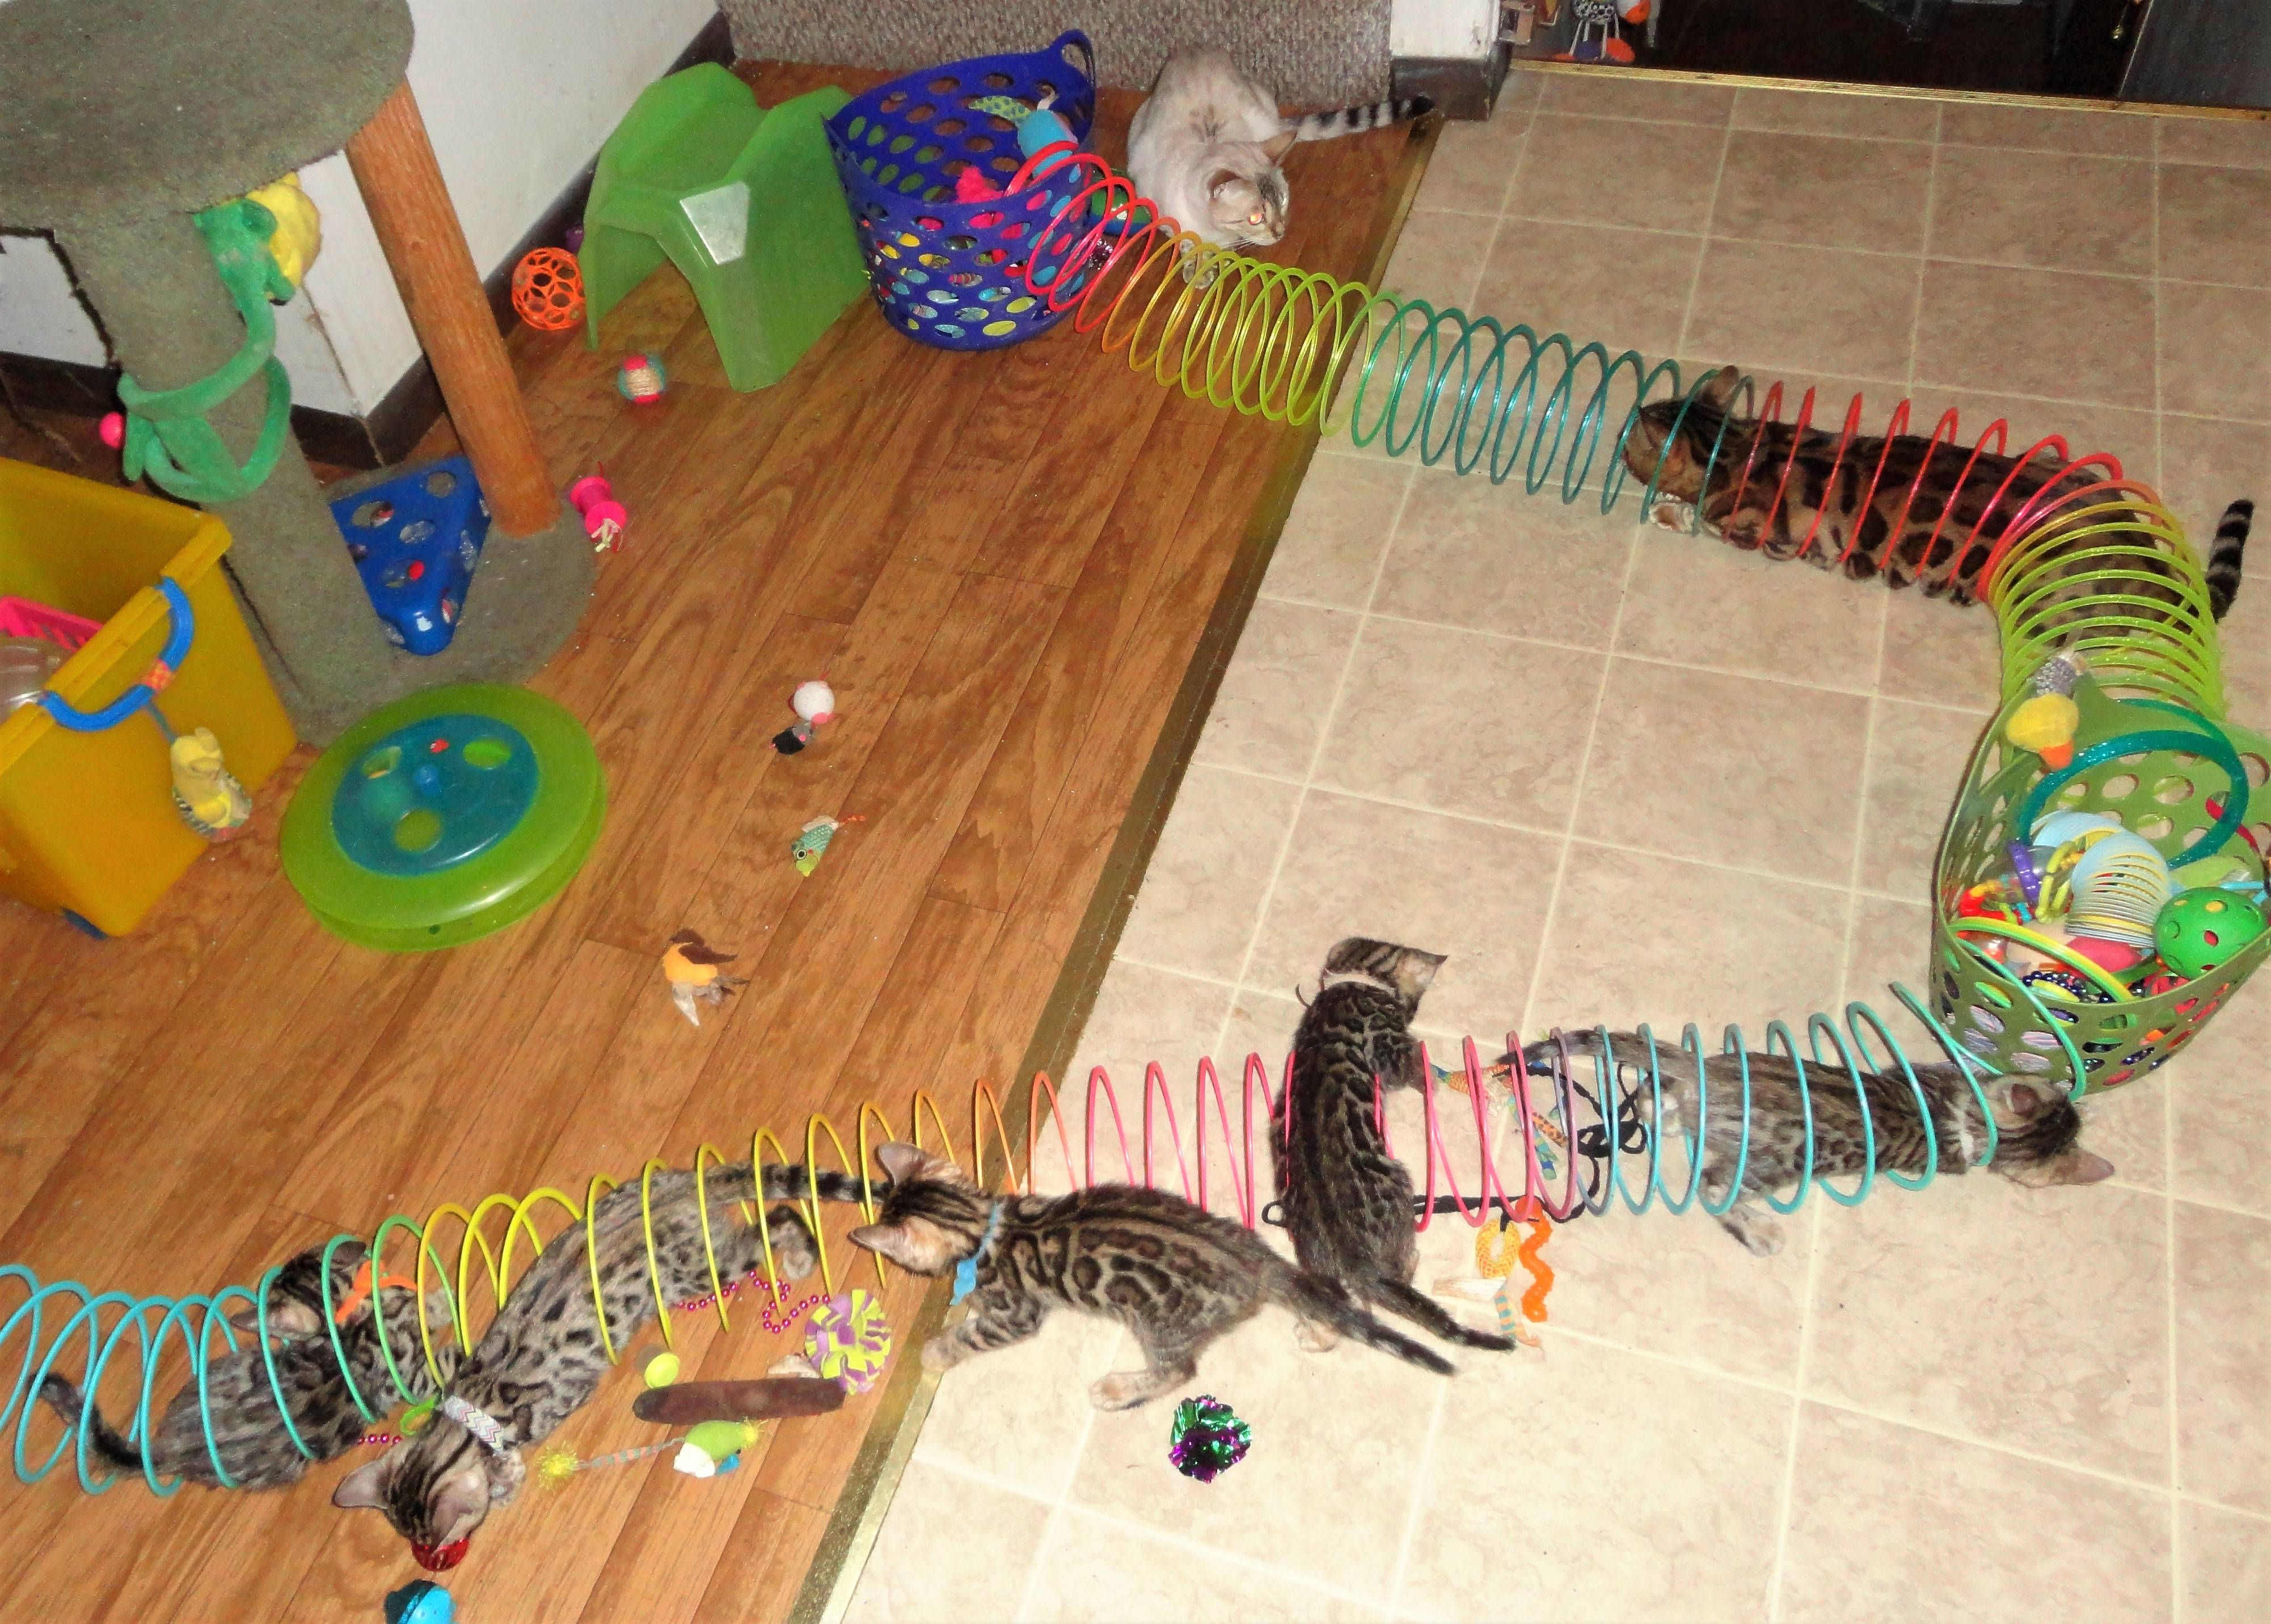 HAVING FUN WITH ENORMOUS SLINKY TUNNELS!